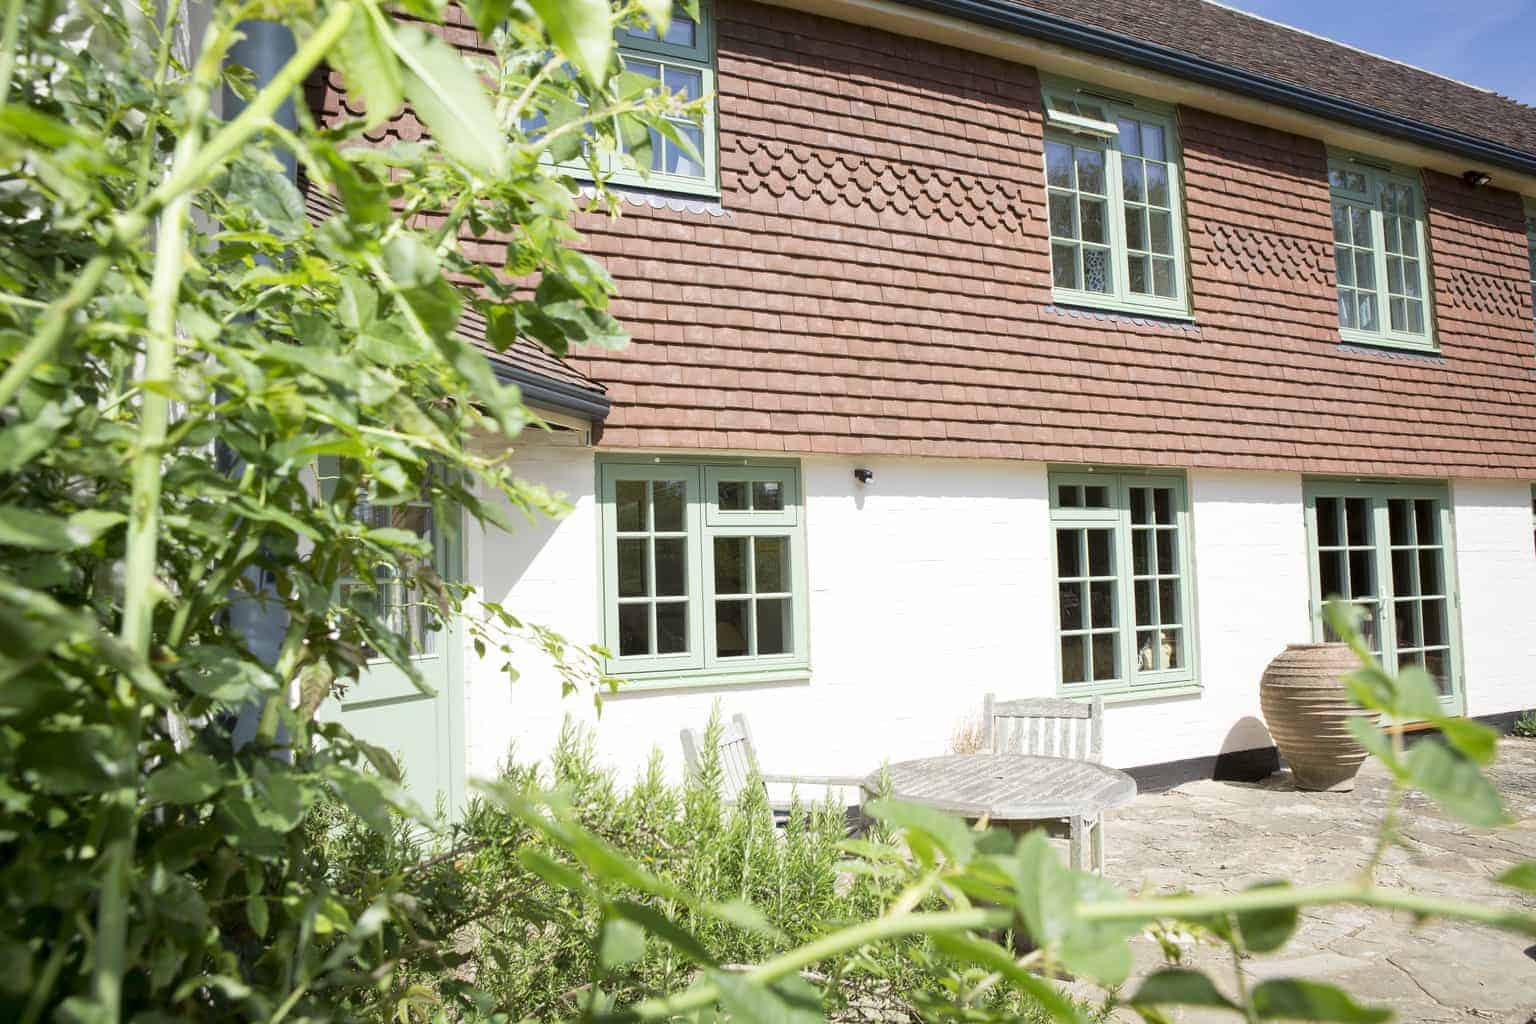 PERFORMANCE triple glazed timber windows with interstitial glazing bars at Sussex low energy retrofit